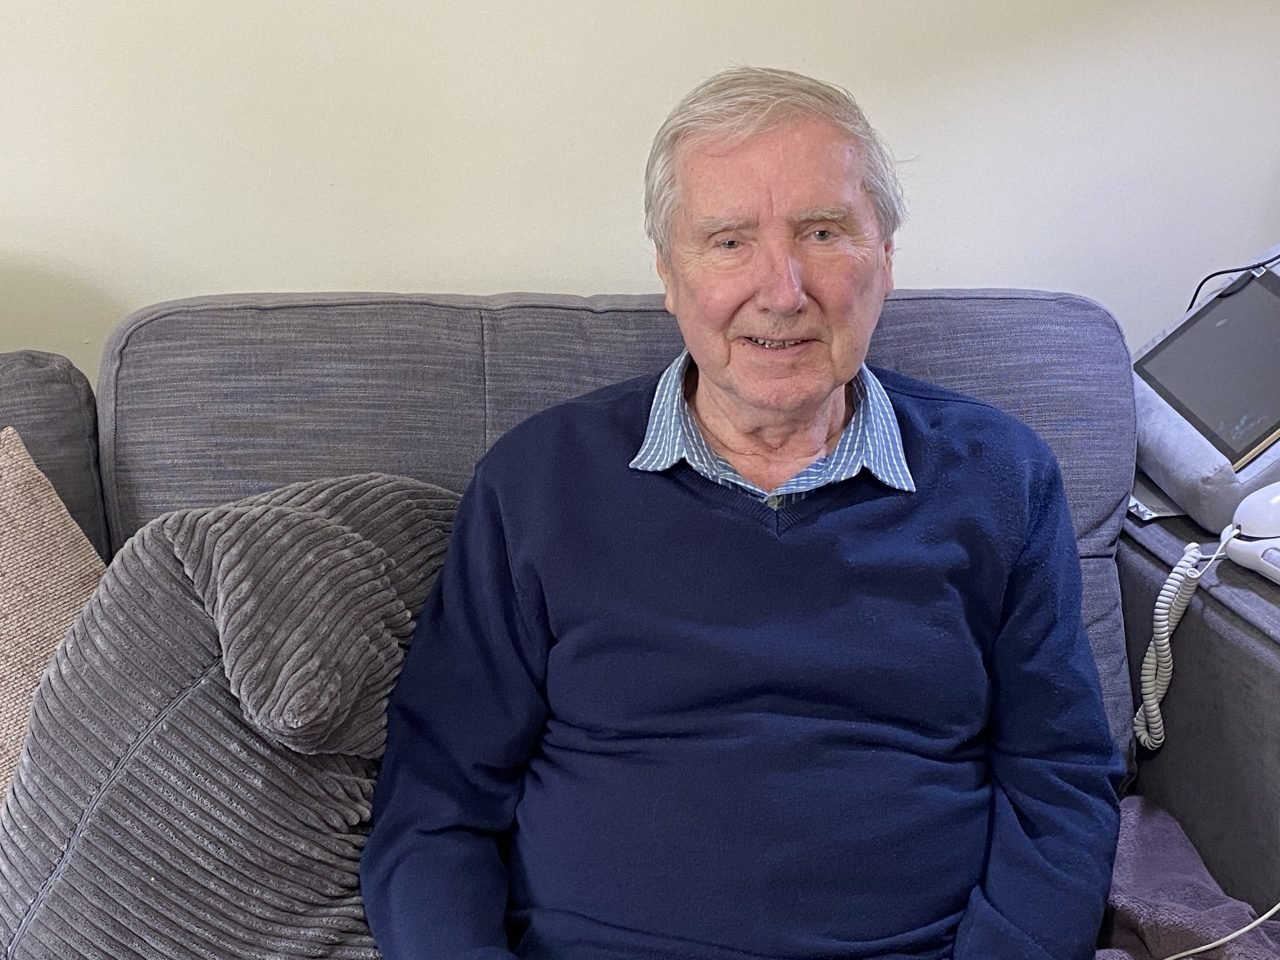 Sheffield grandad thanks older persons charity for loneliness busting lockdown support